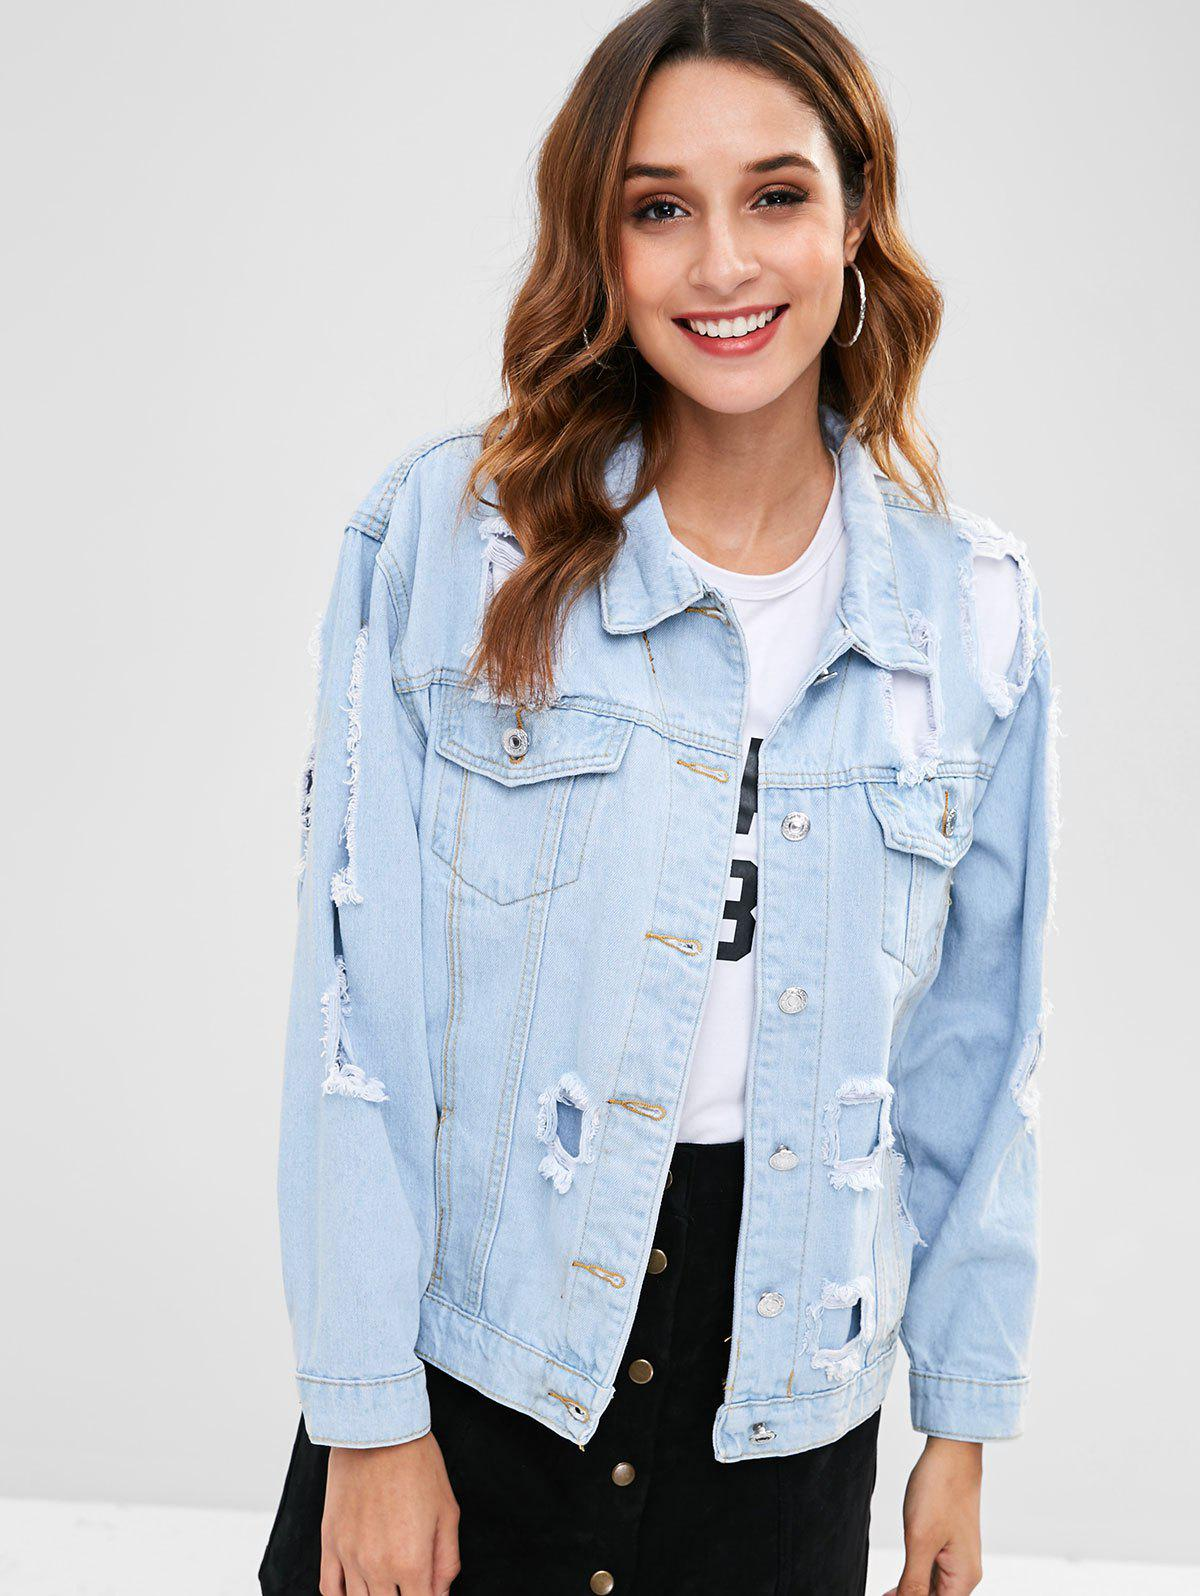 Cut Out Ripped Jeans Jacket